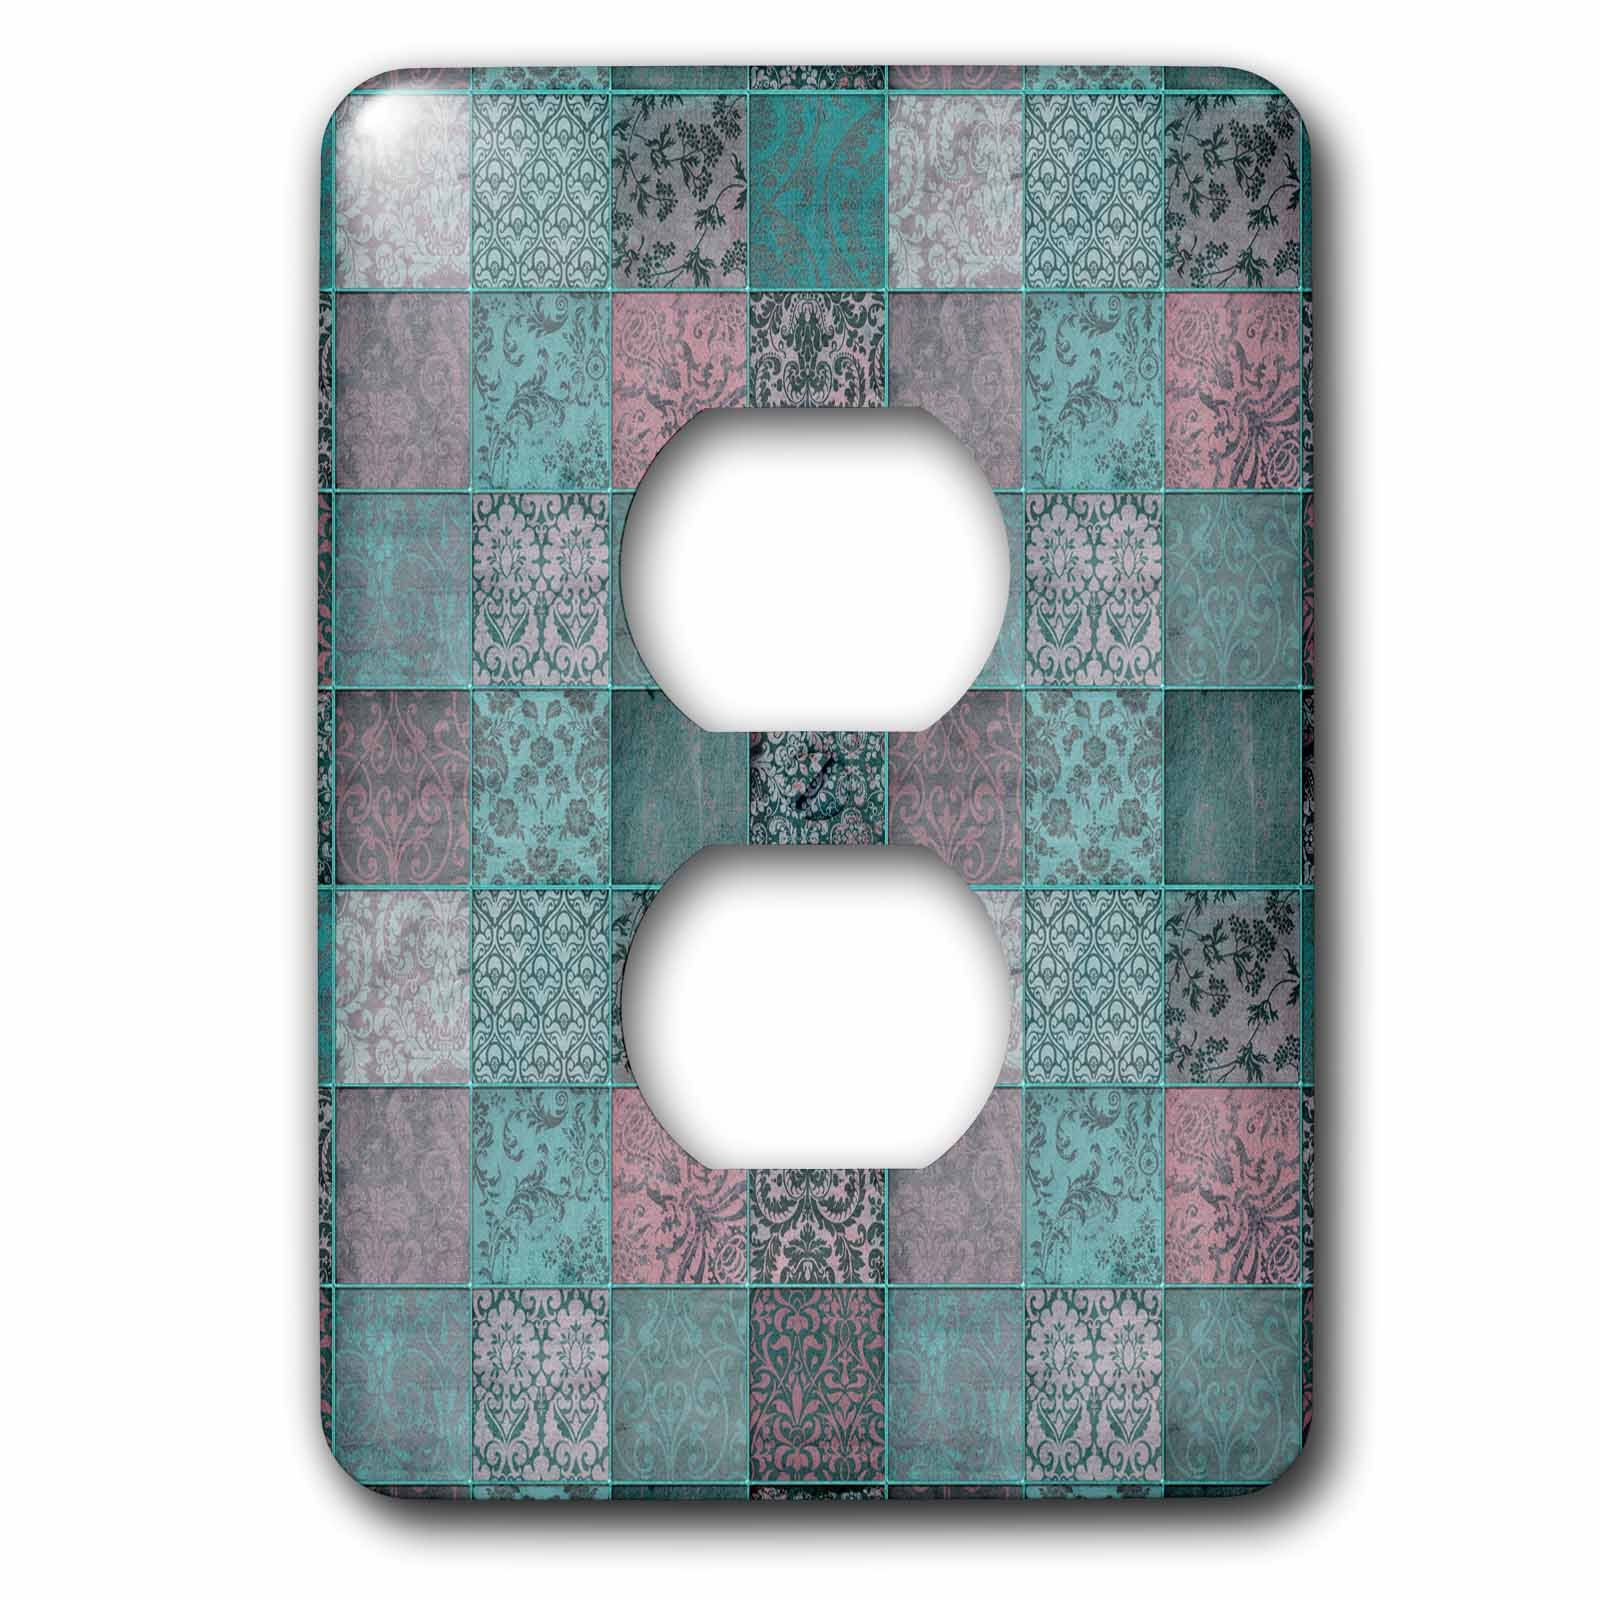 3dRose Andrea Haase Allover Pattern - Vintage Fabric Patchwork Pattern In Dark Pastel Colors - Light Switch Covers - 2 plug outlet cover (lsp_268409_6)